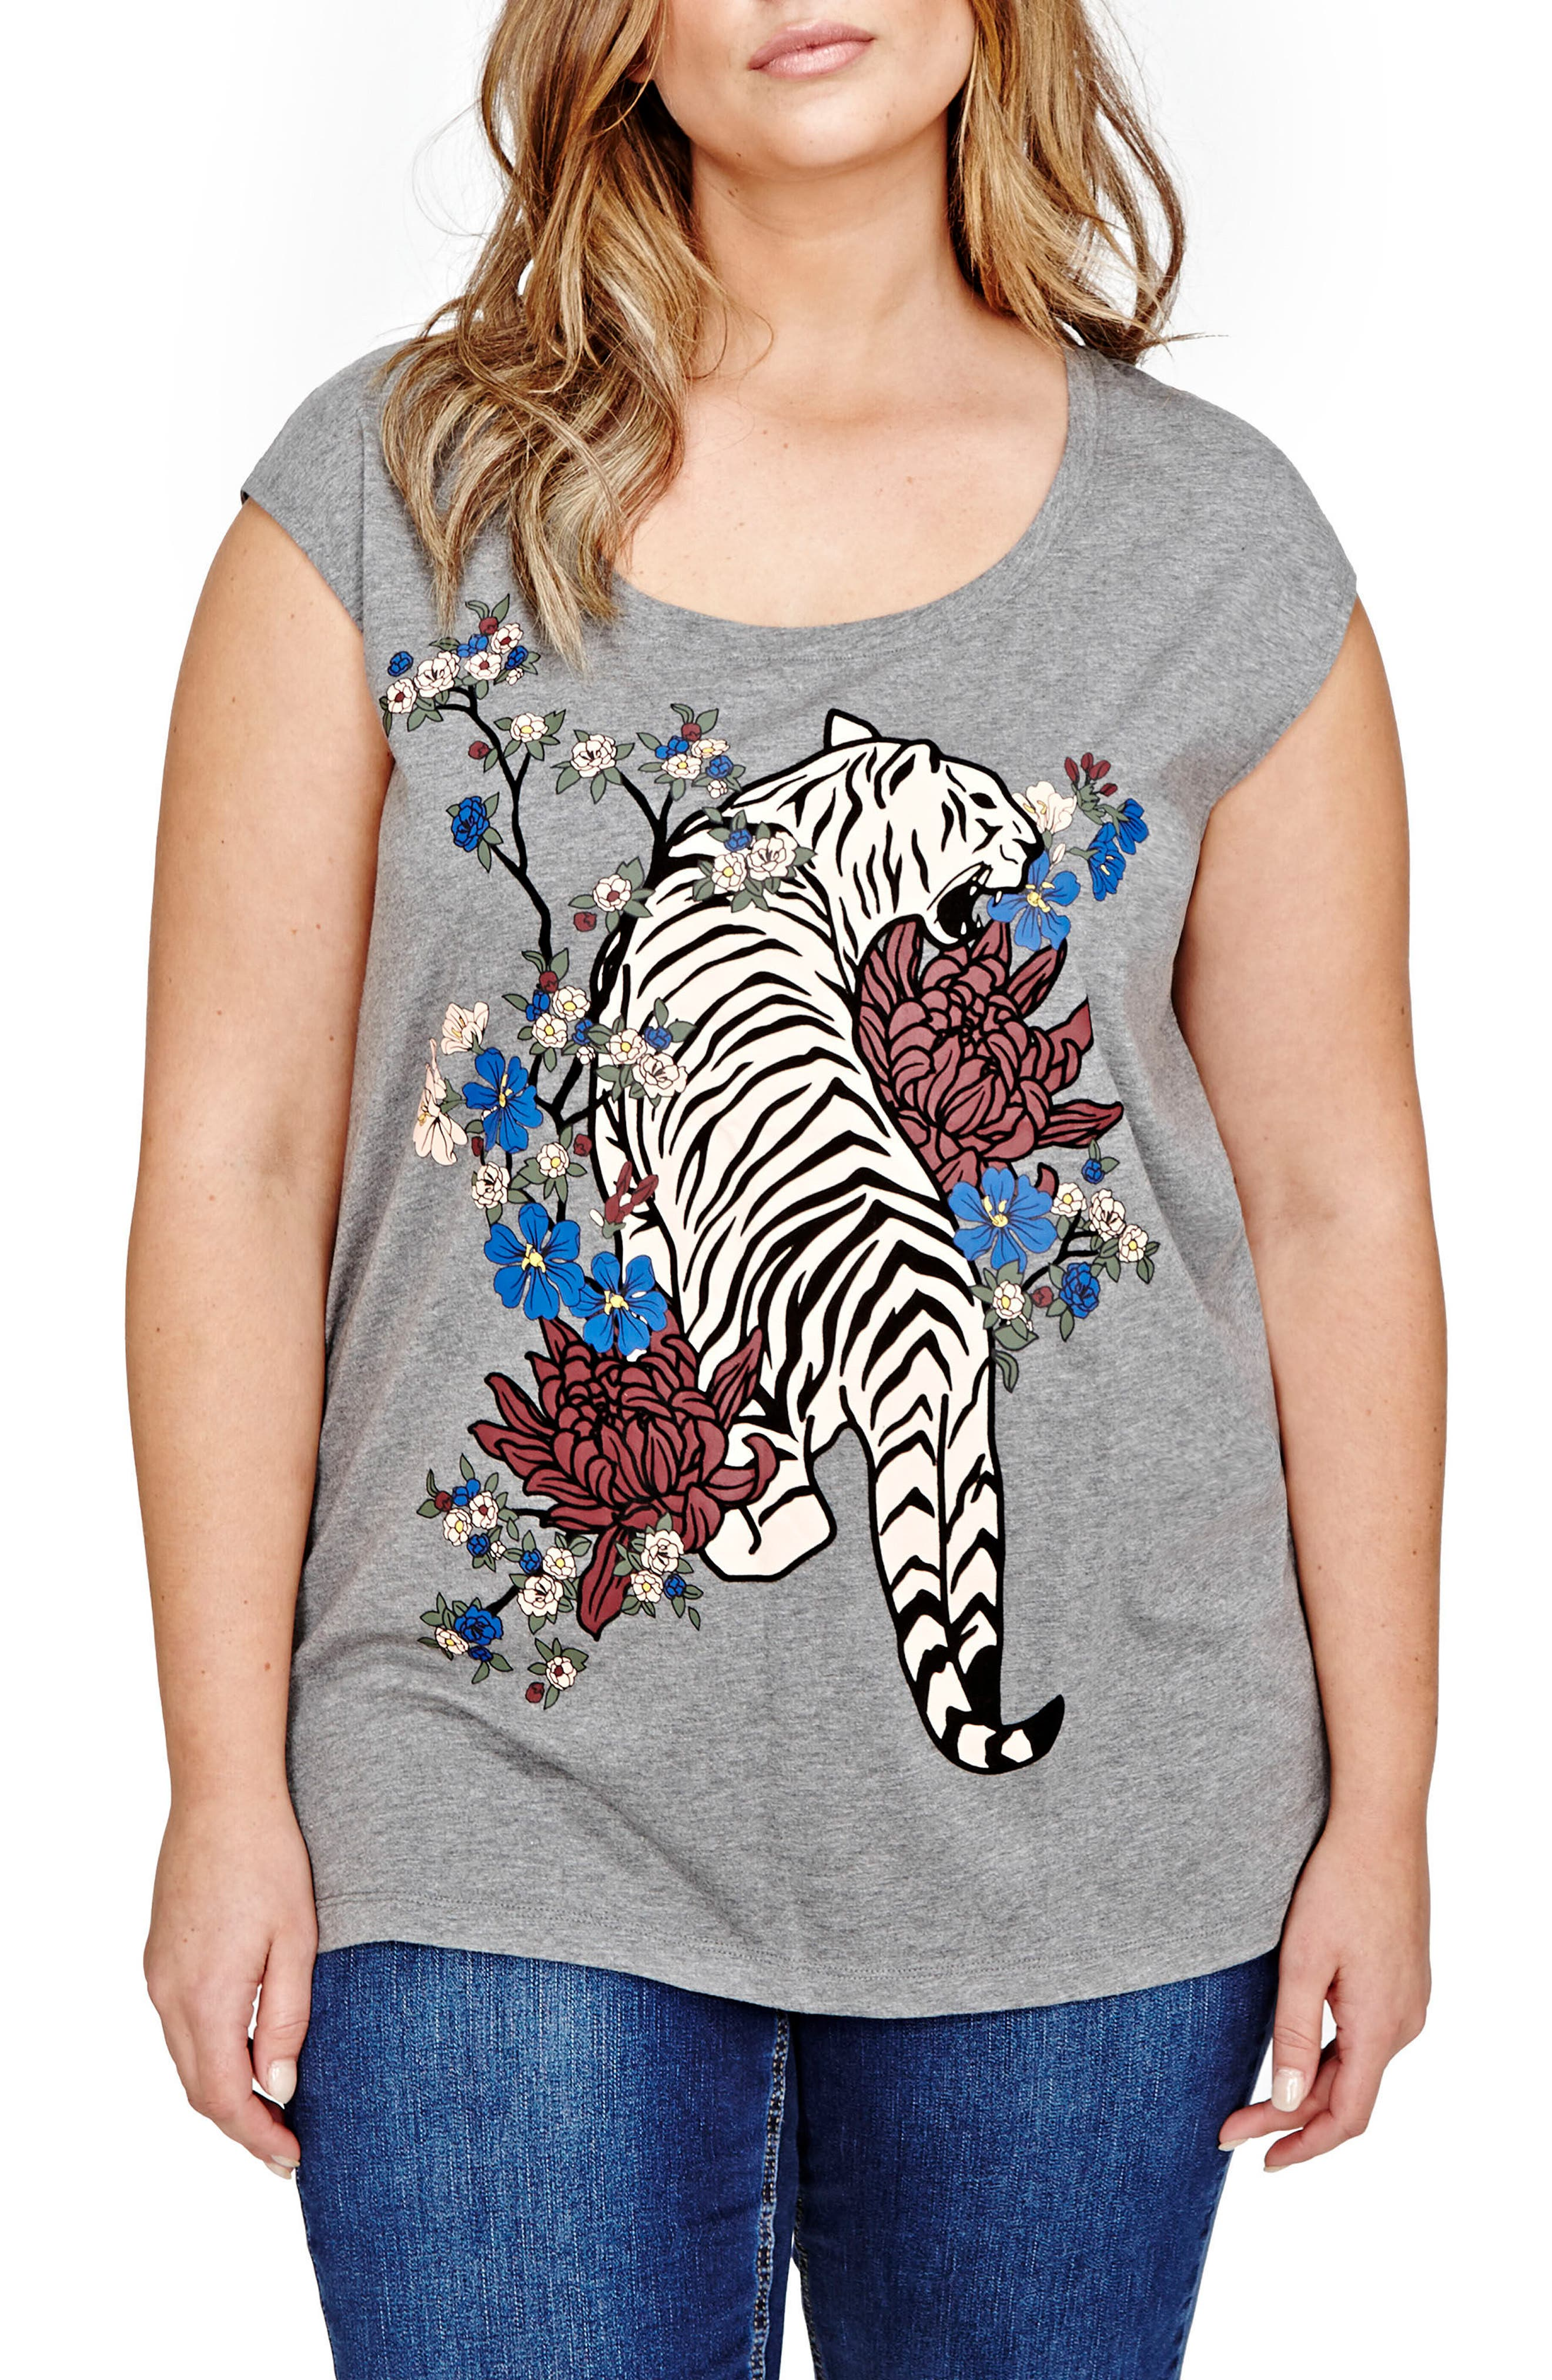 ADDITION ELLE LOVE AND LEGEND Flocked Tiger Graphic Tee (Plus Size)